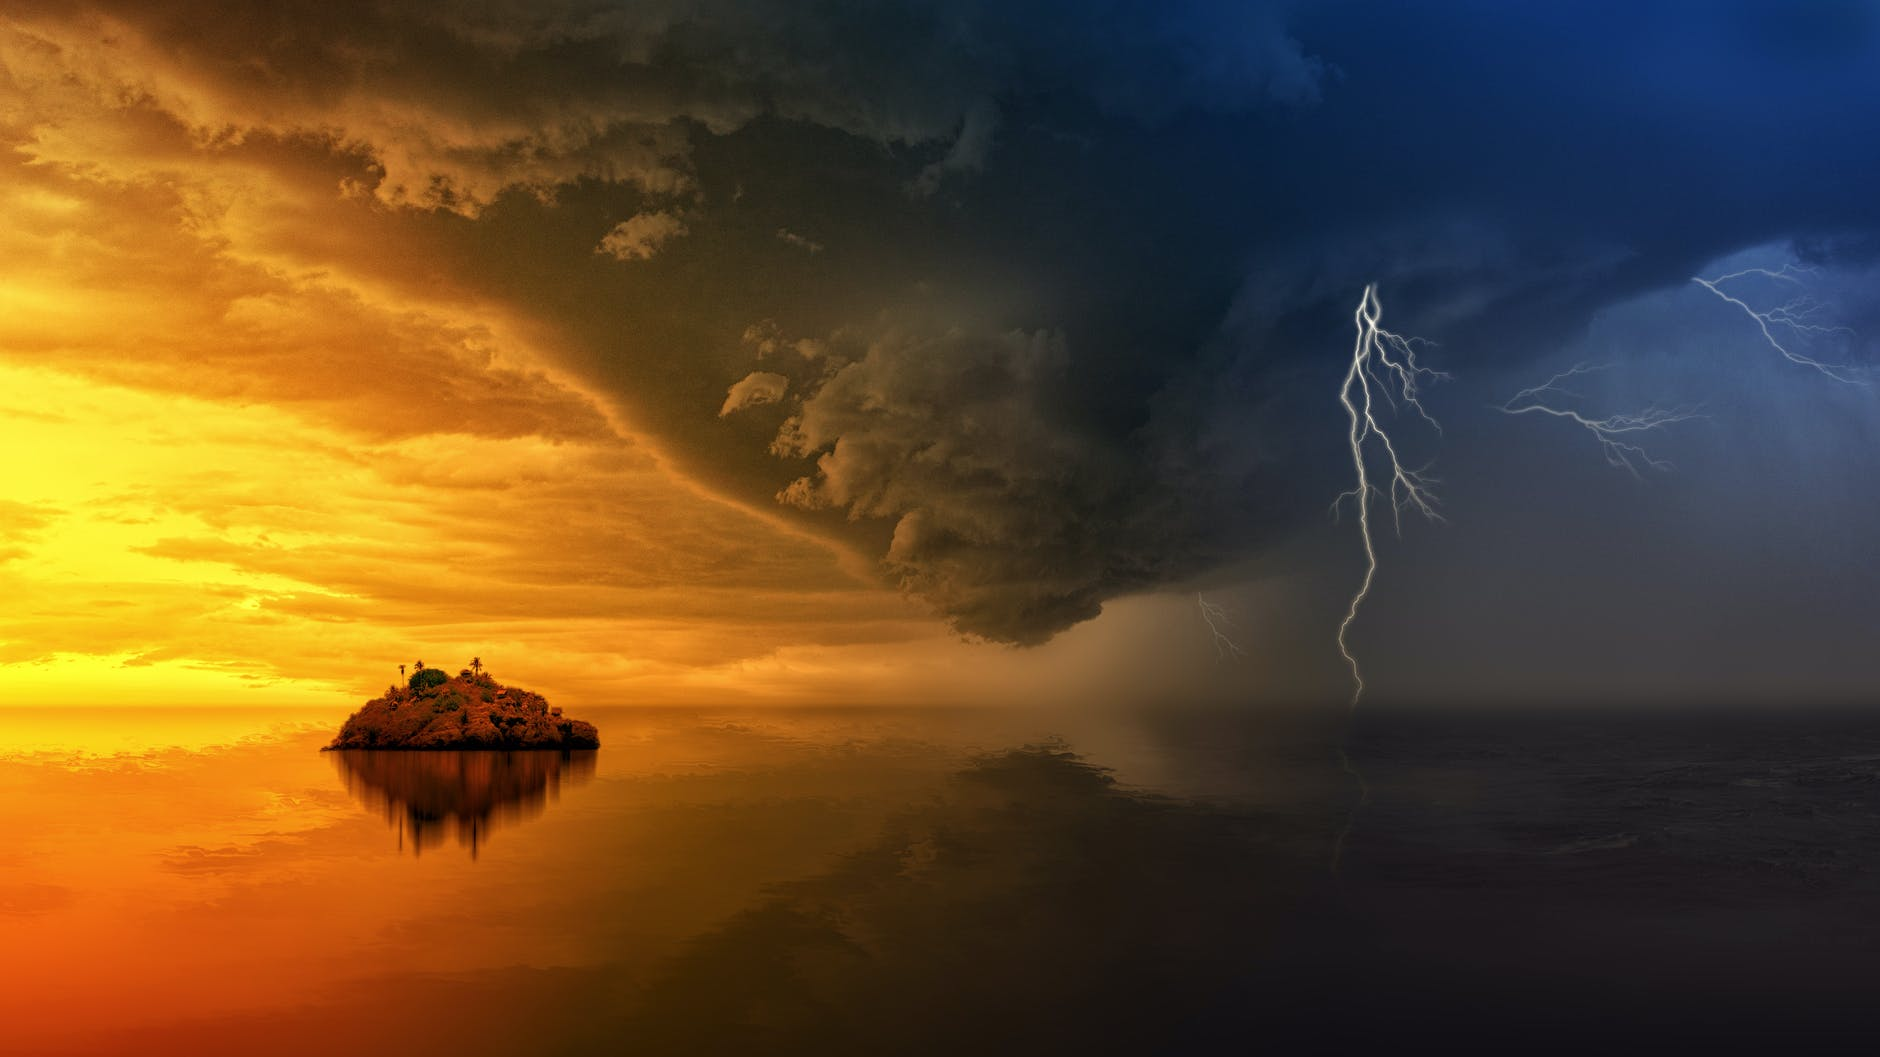 Does The Weather Affect Our Emotional State?